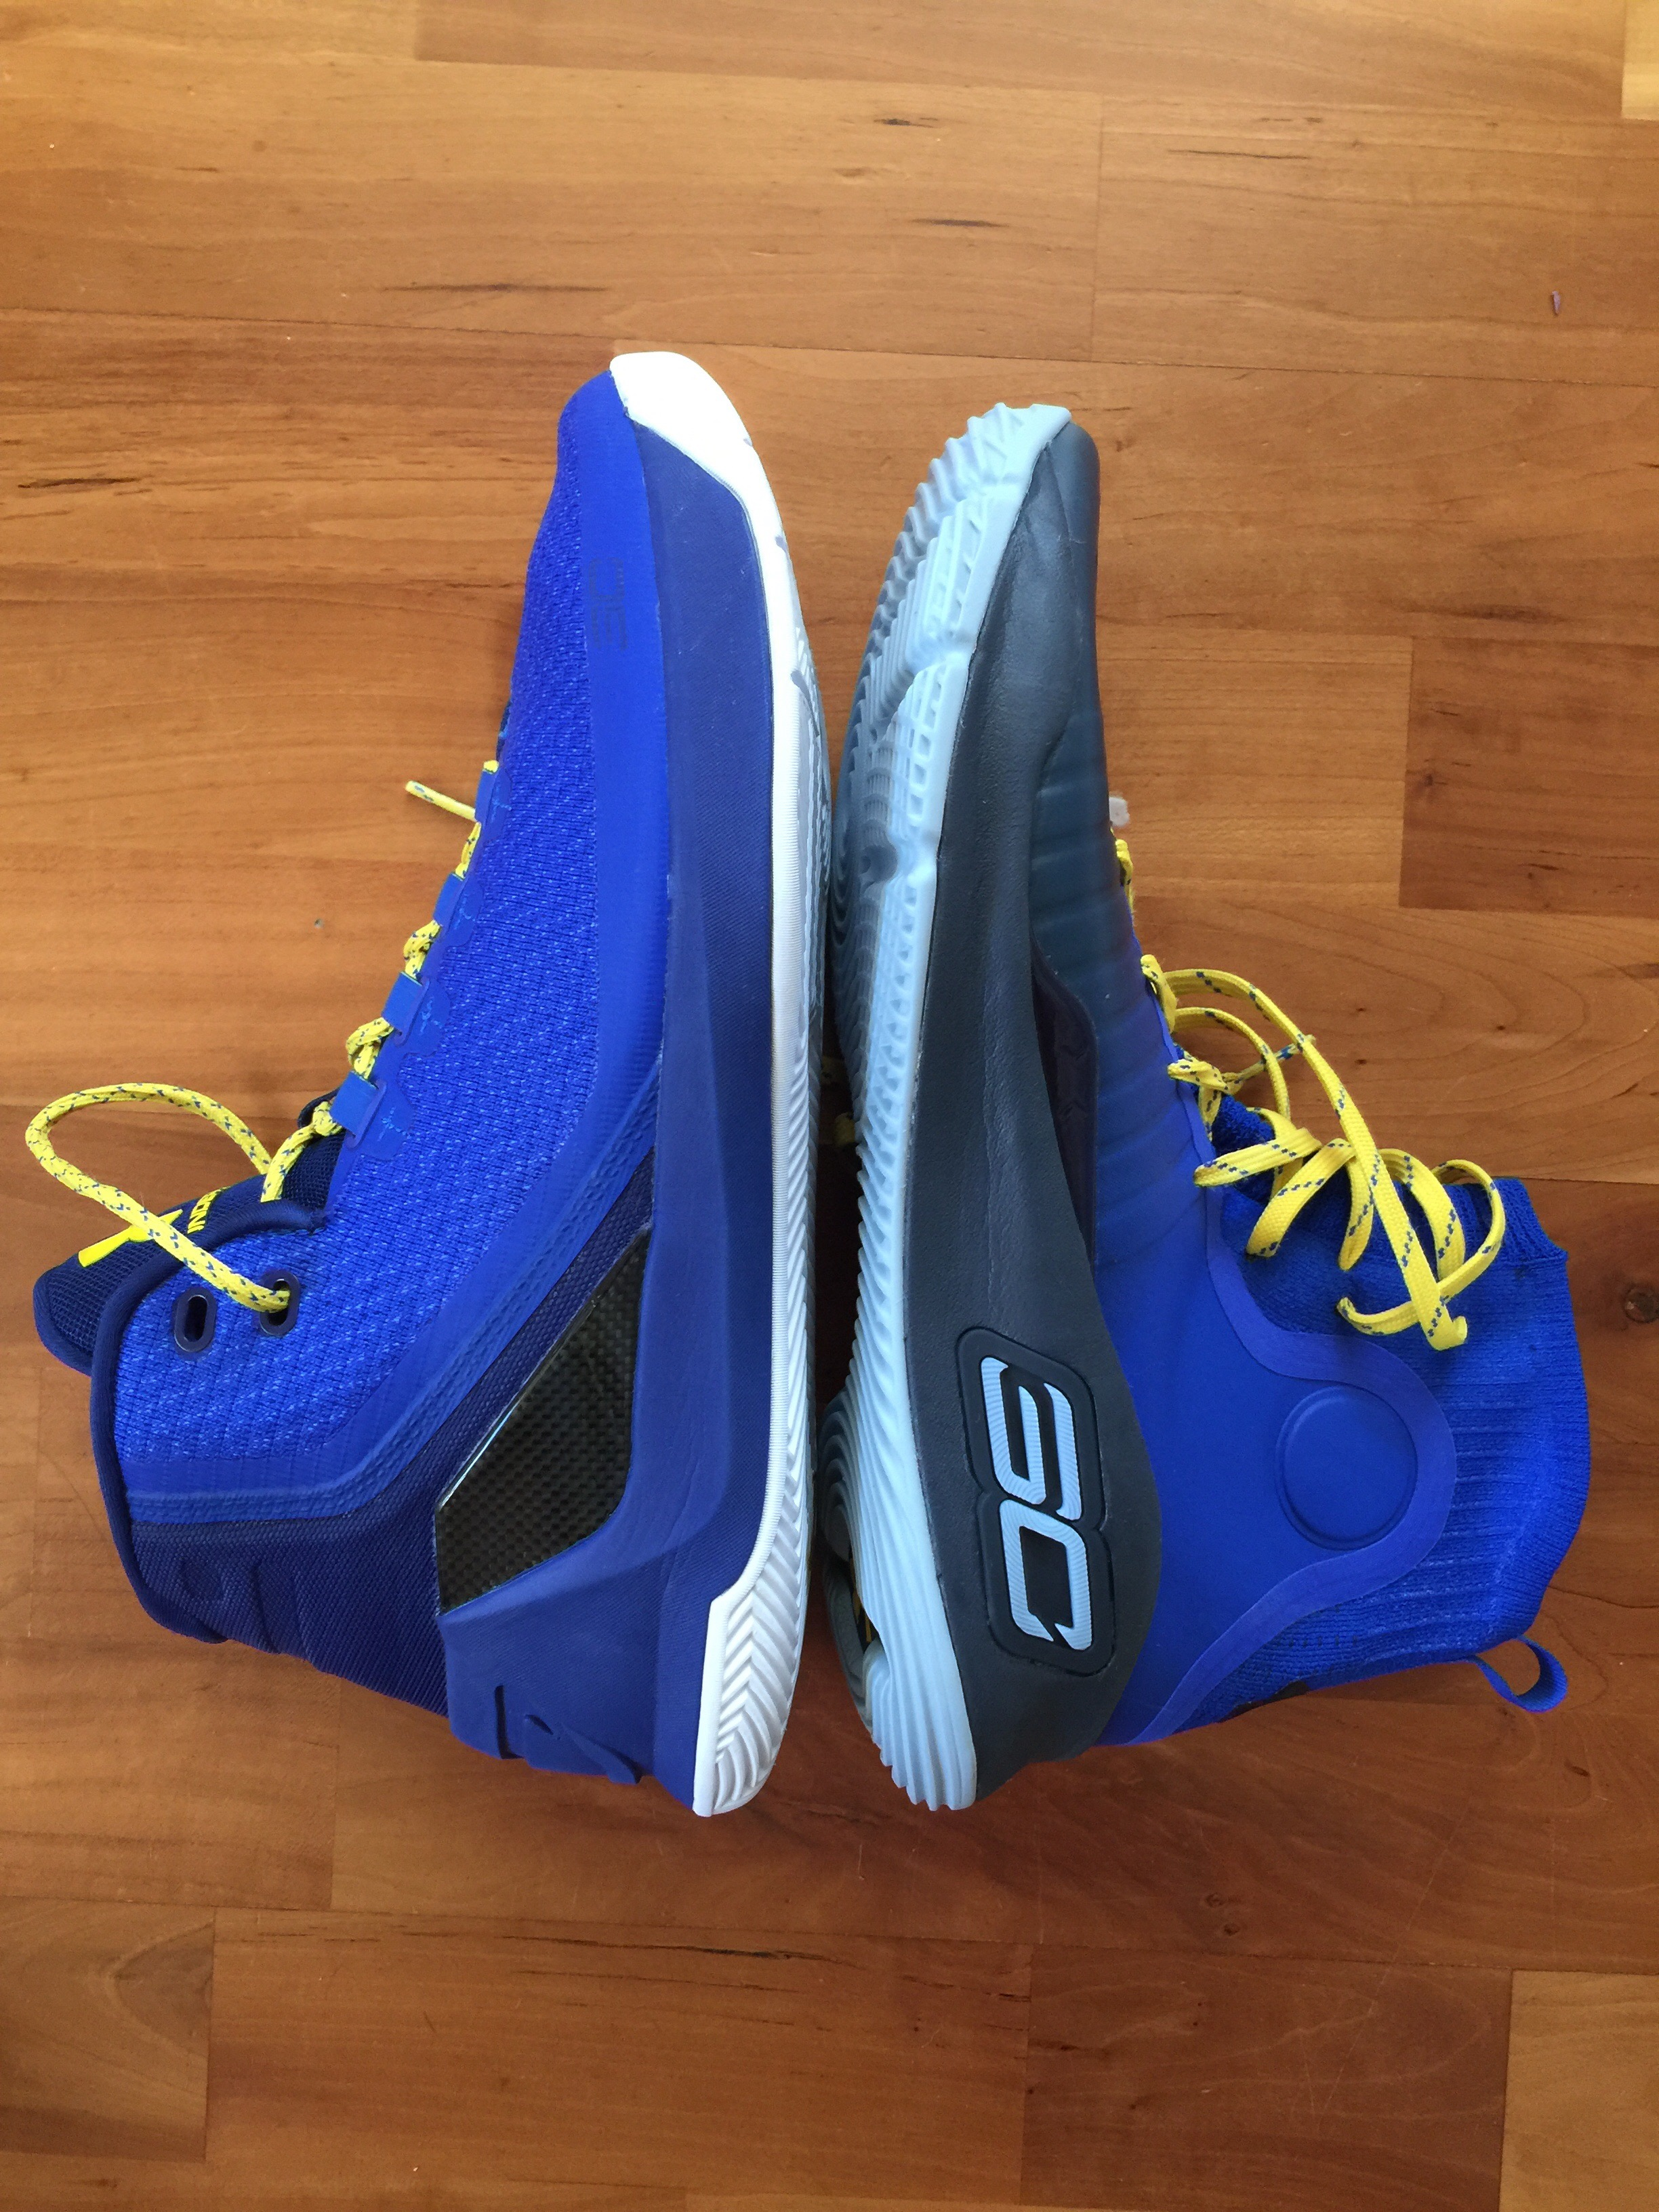 1664a5ec8e63 Look how much smaller the Curry 4 size 11.5 is vs a size 11 Curry 3